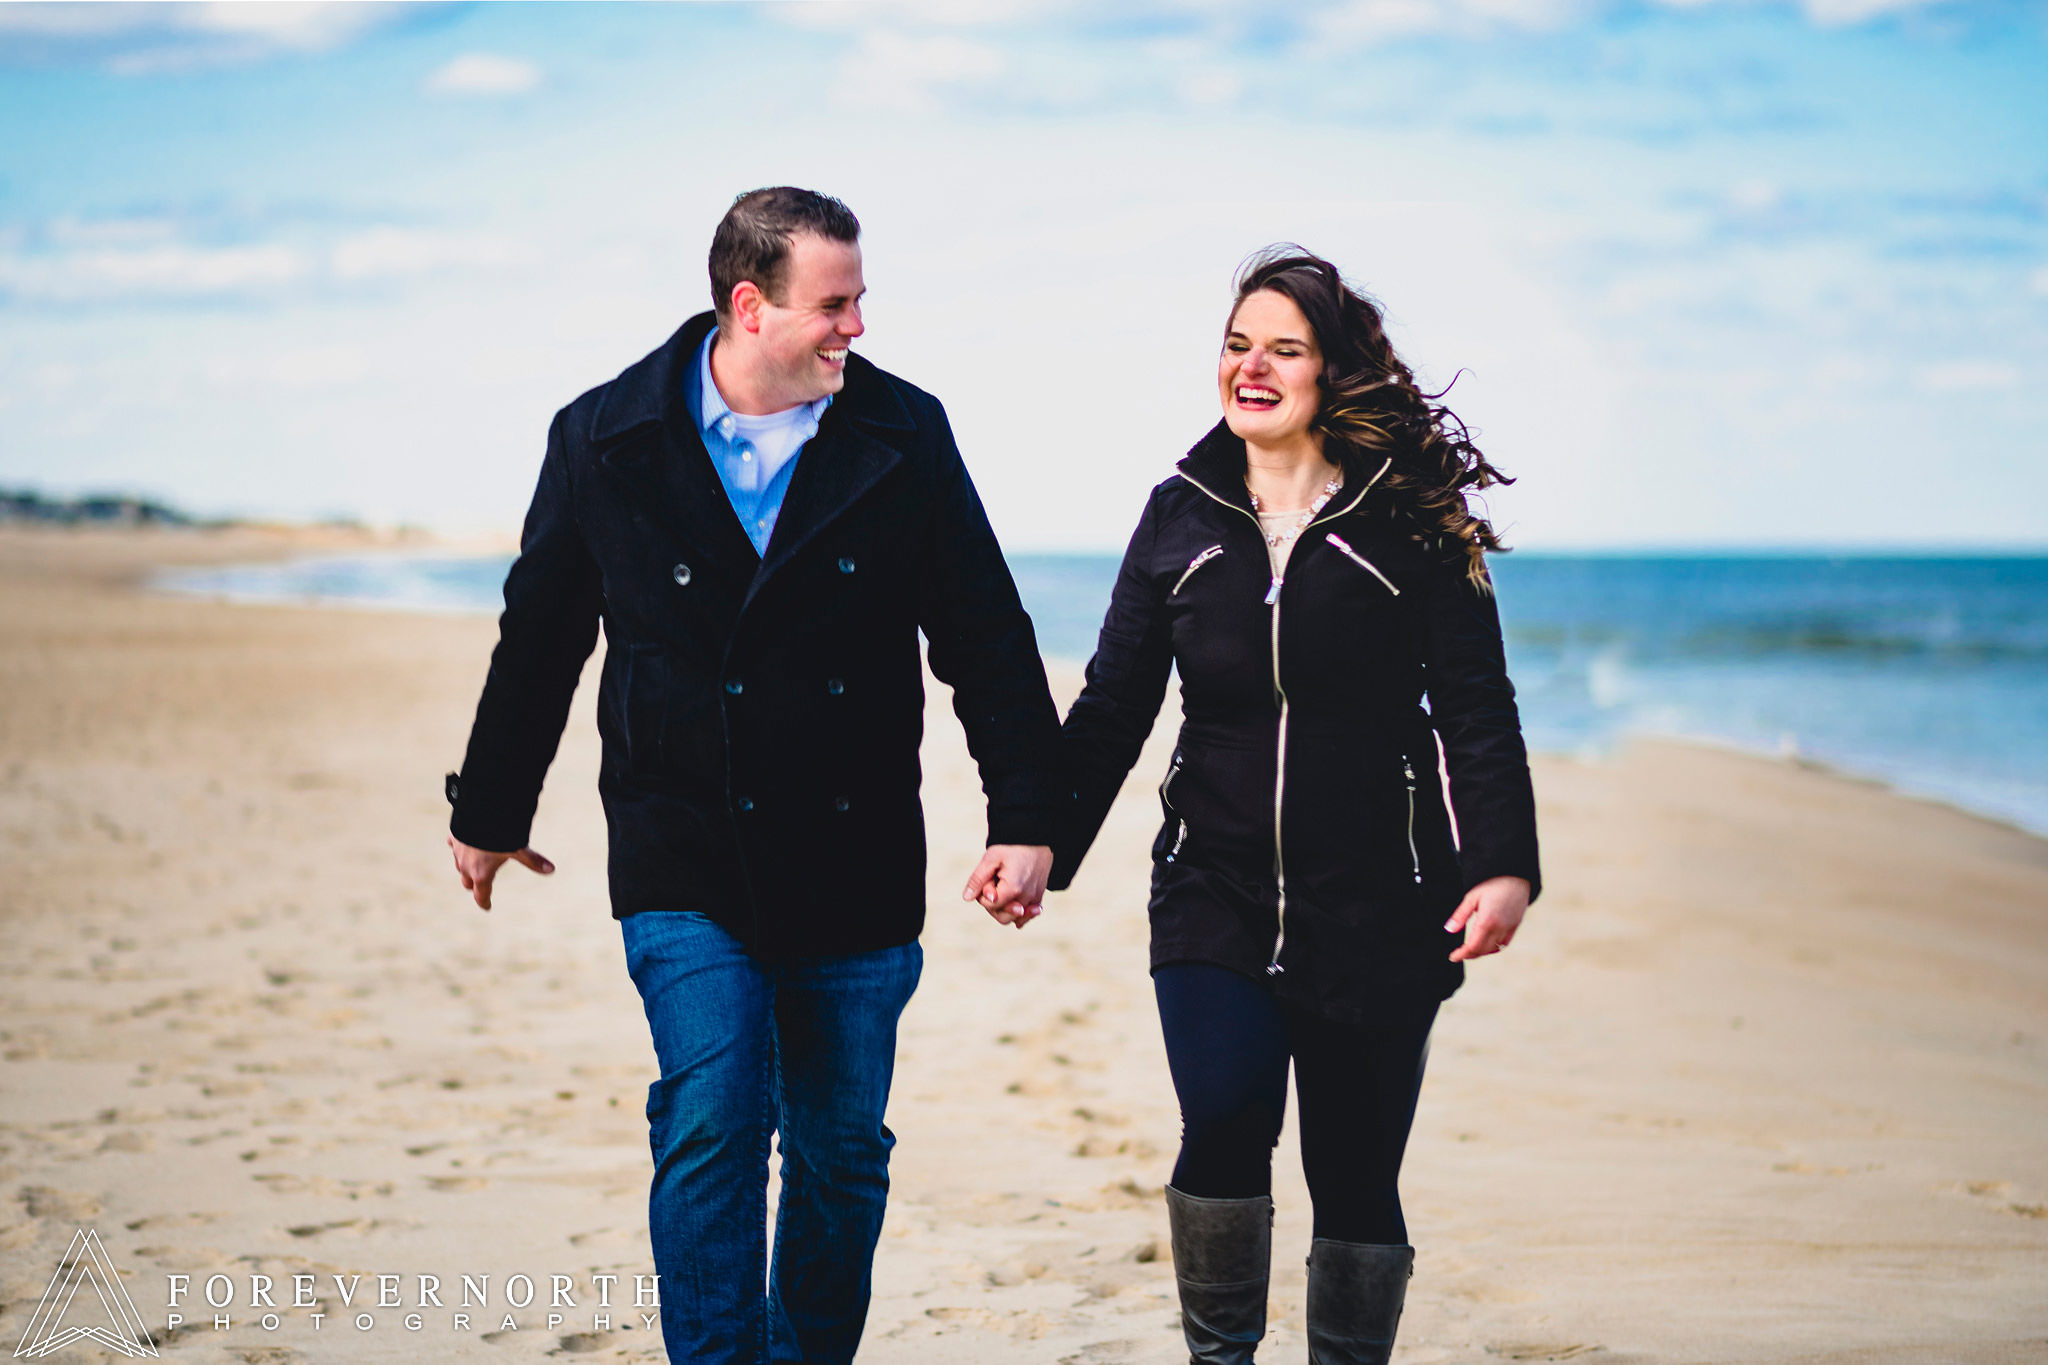 Schall-Forever-North-Photography-Proposal-Engagement-Photographer-Manasquan-Beach-24.JPG